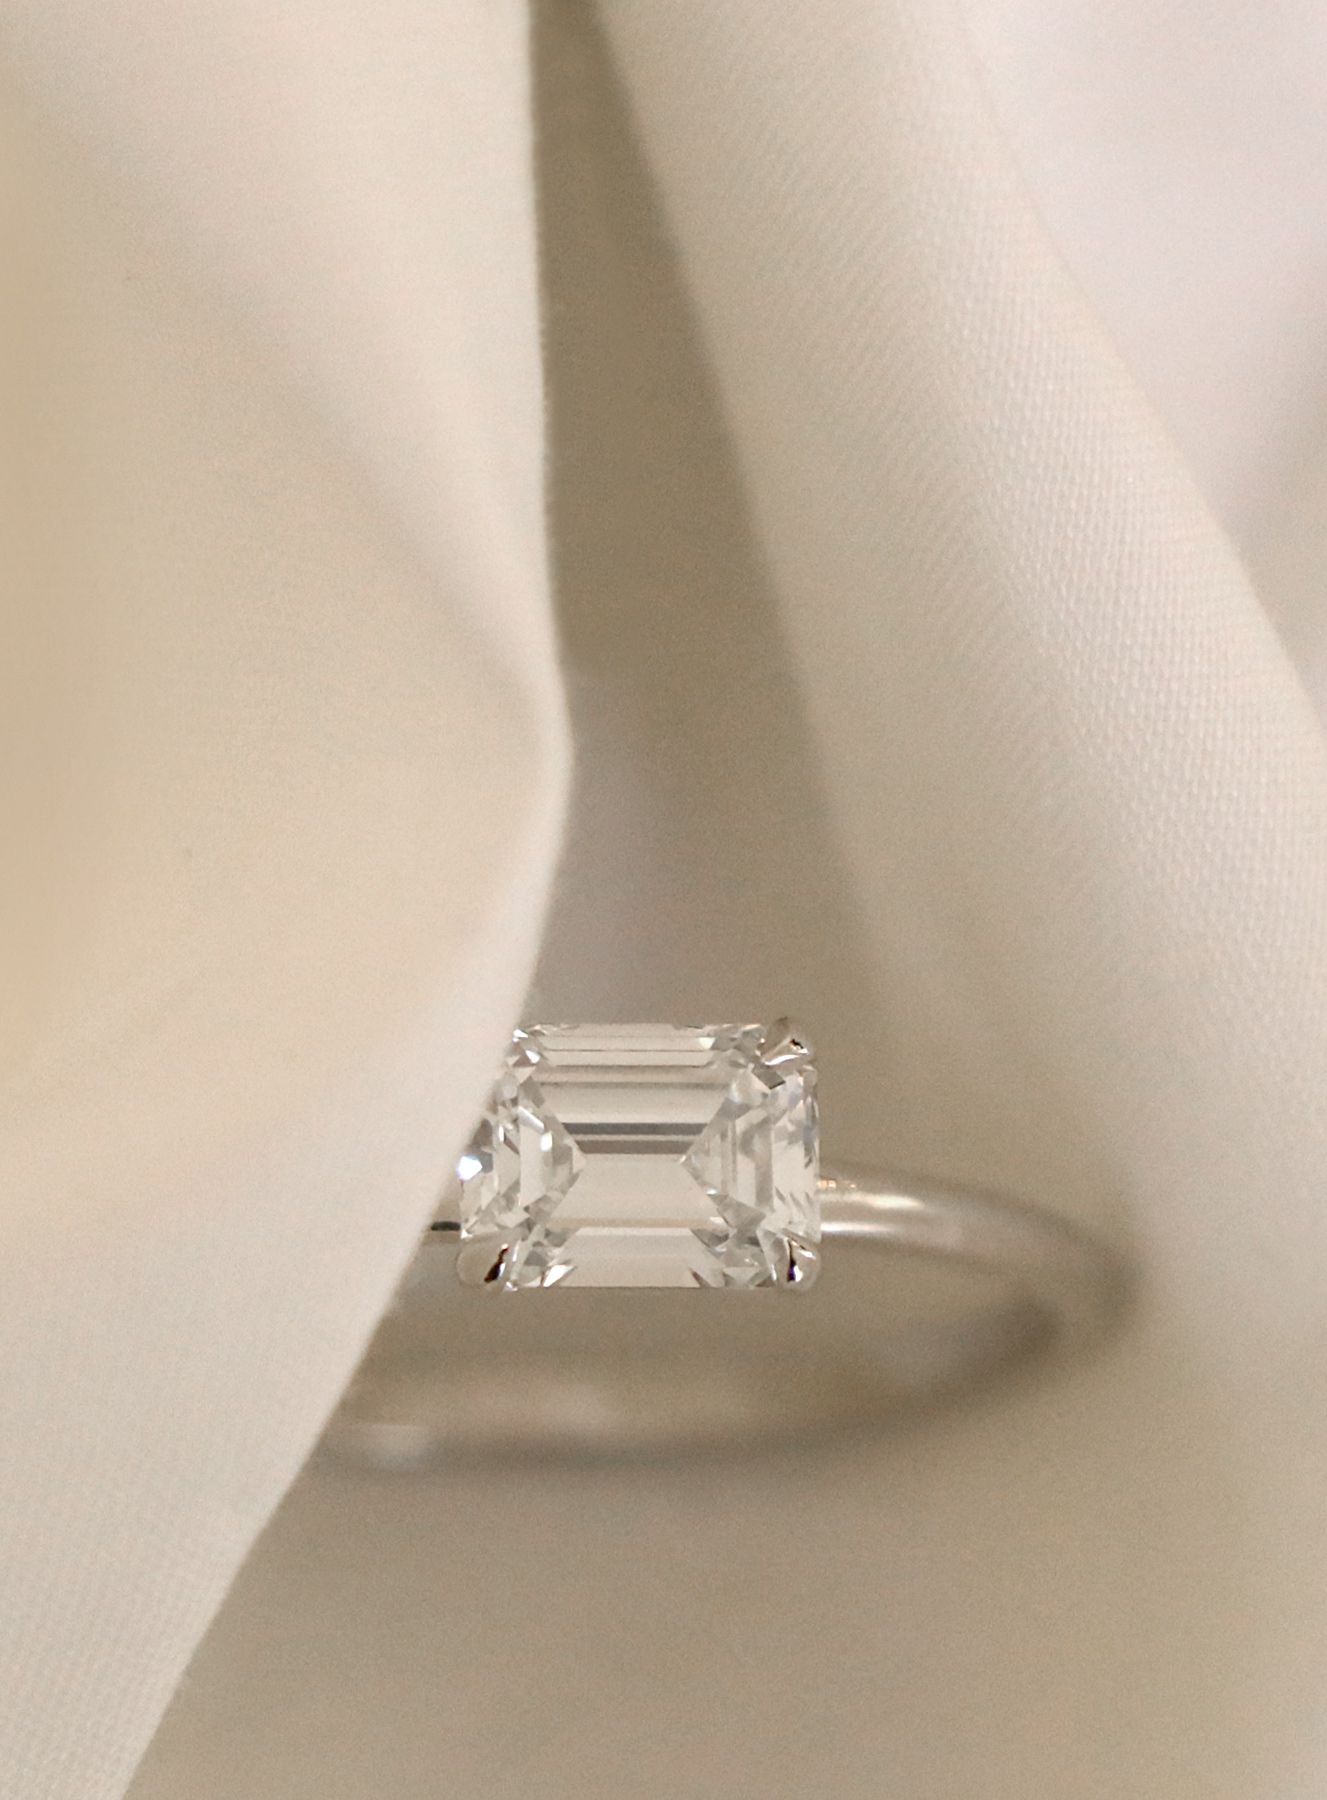 Vow Vrai Oro Wedding Emerald Cut Diamond Engagement Ring 18k White Gold Conflict Free